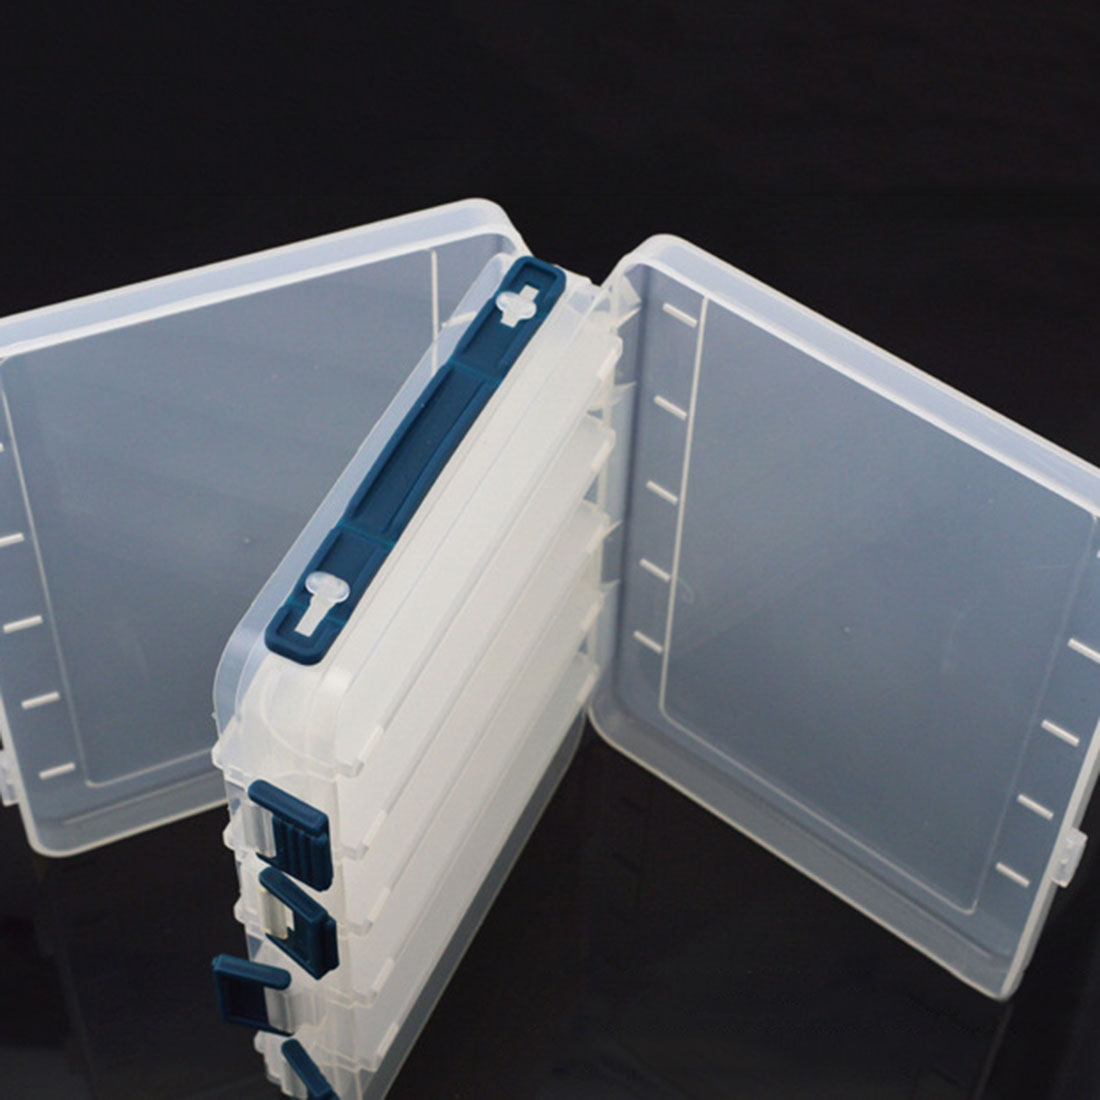 Portable 2 Layers Many Compartments Visible PVC Fishing Lure Bait Hooks Fish Tackle Box Accessory Storage Box Case Fishing Tool